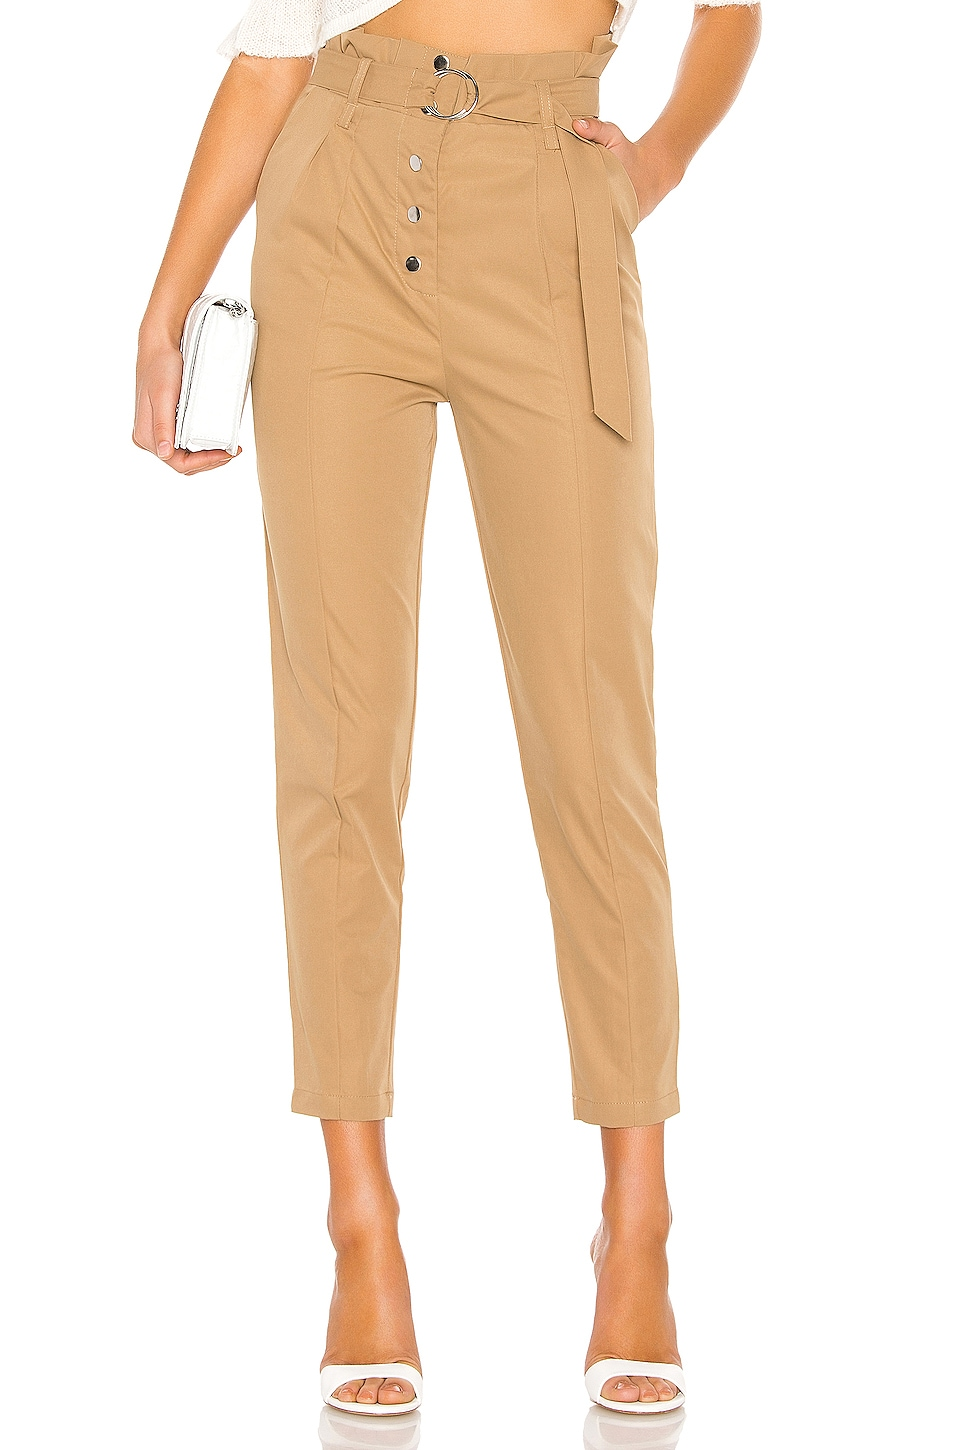 Tularosa Klein Pants in Tan